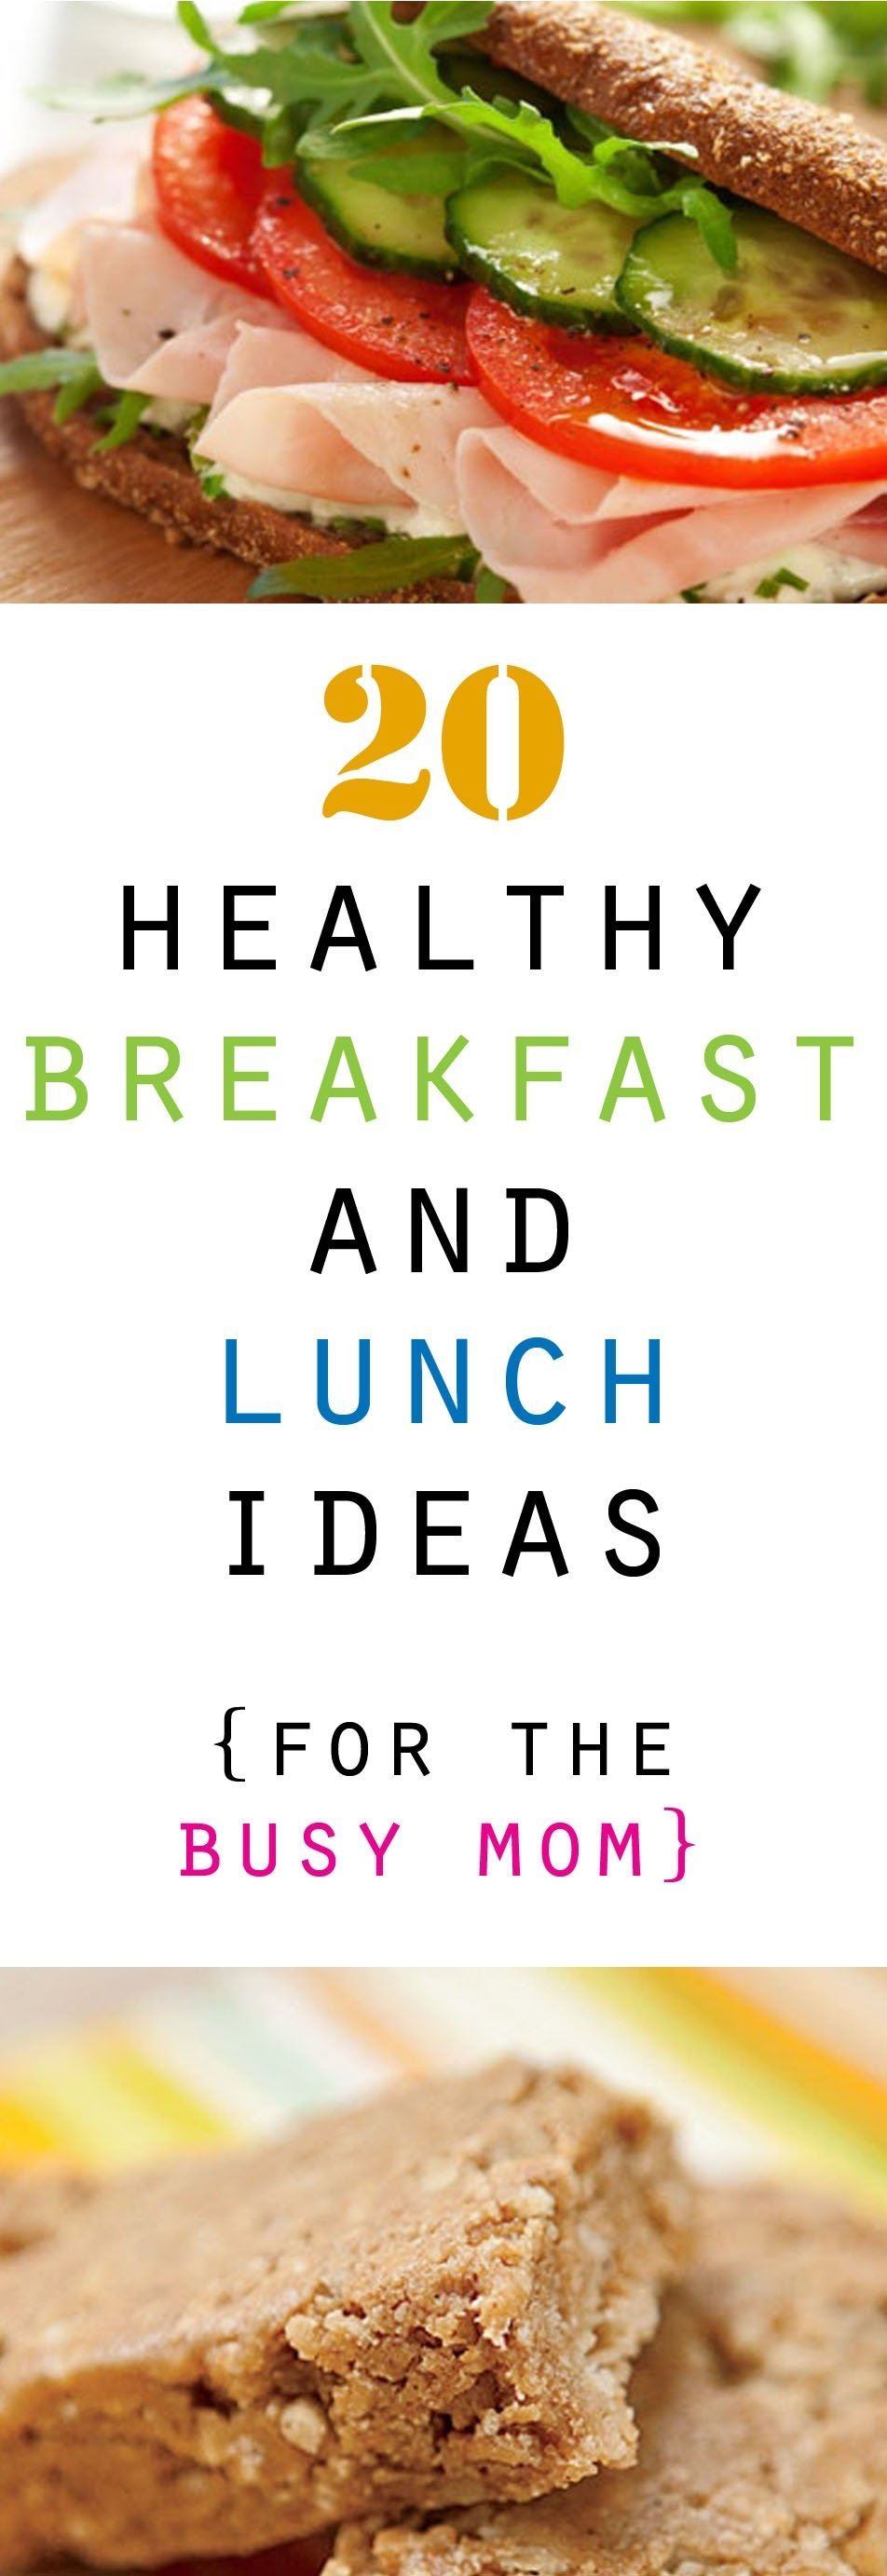 10 Attractive Healthy Breakfast And Lunch Ideas 20 healthy breakfast and lunch ideas honeybear lane 2020